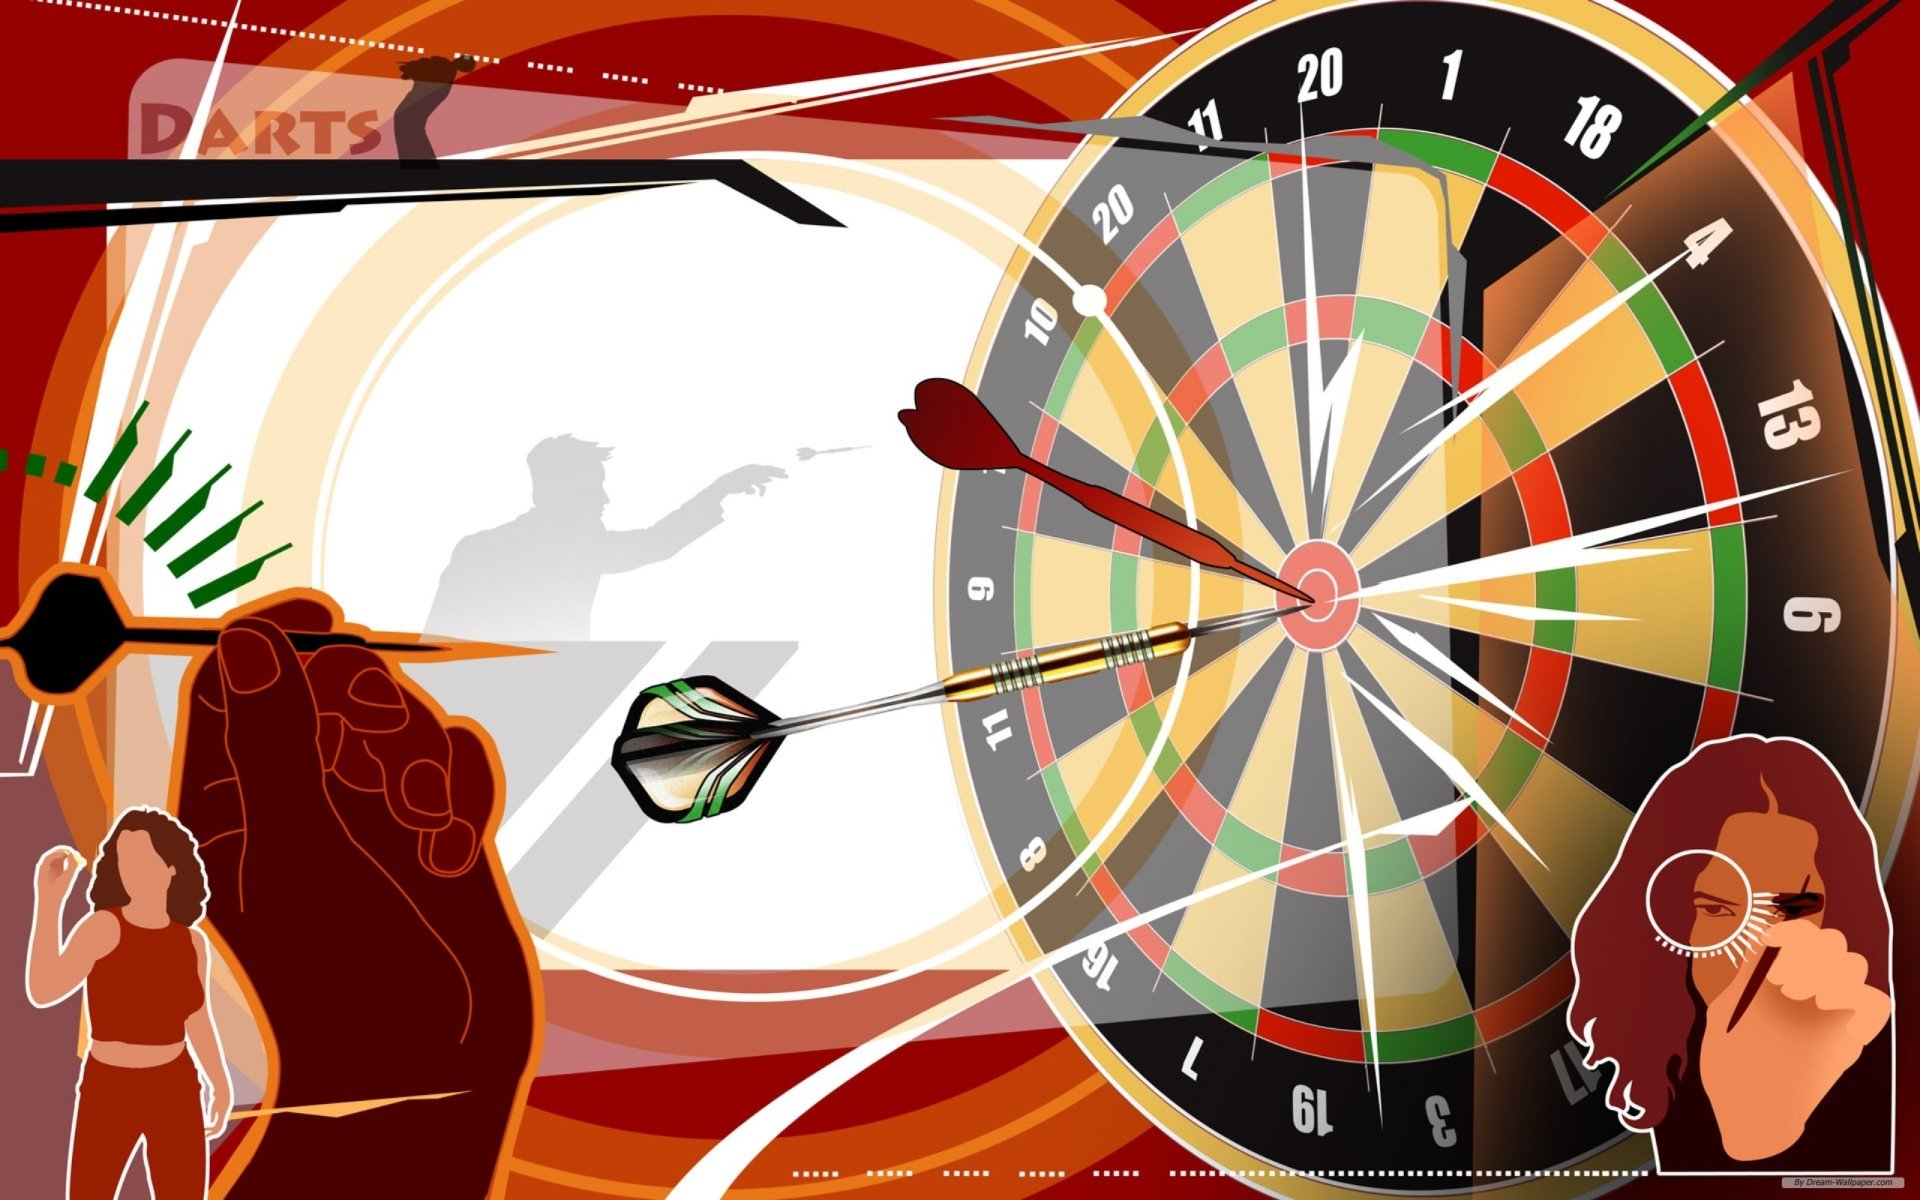 Game - Darts  Wallpaper